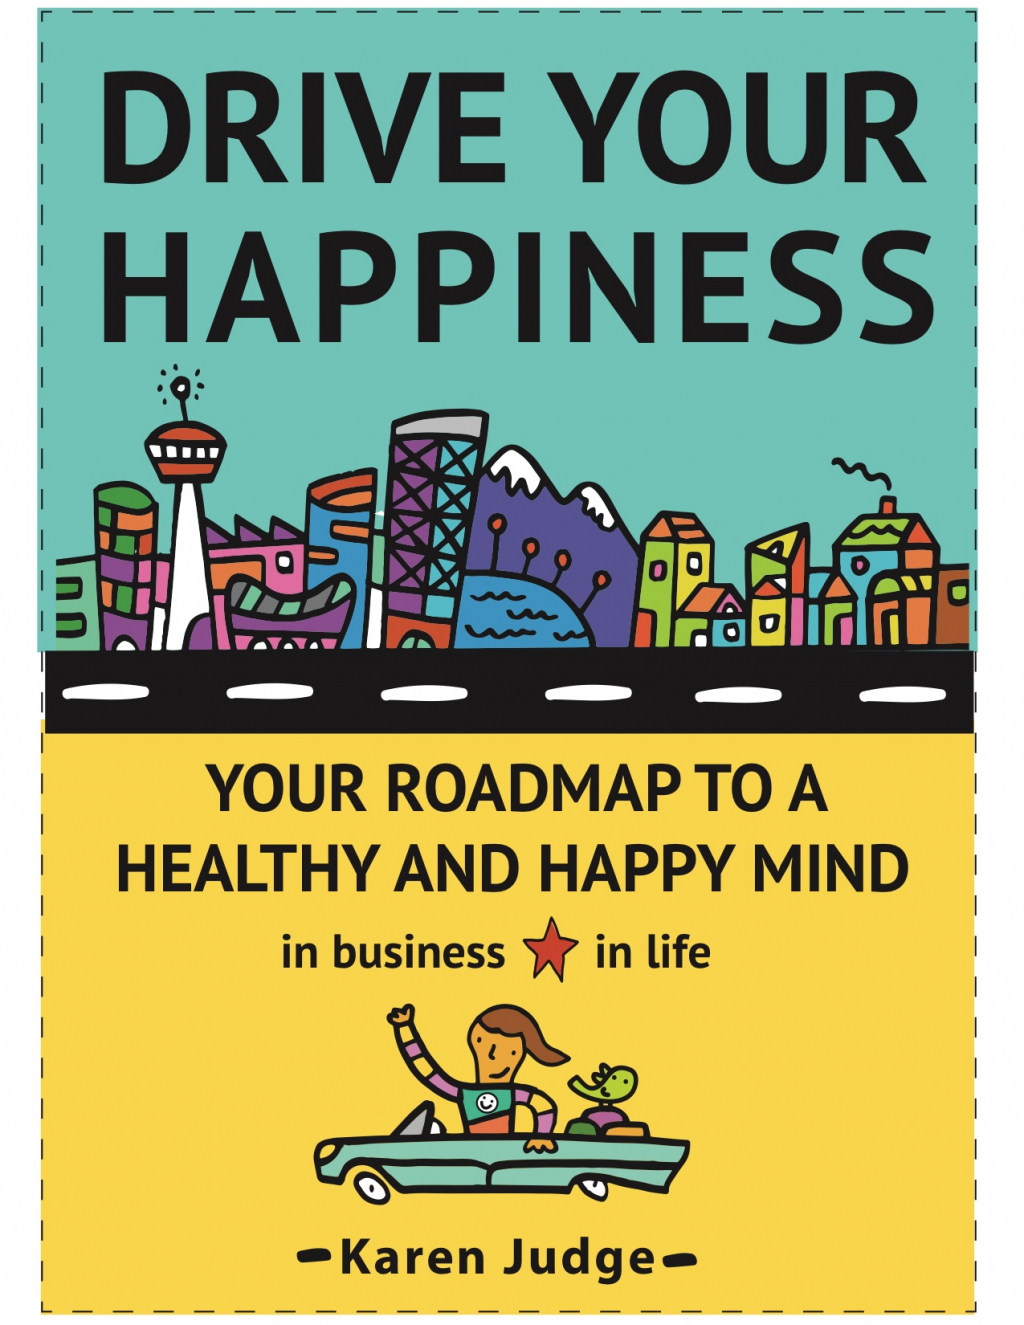 Thumbnail of: Drive Your Happiness bulk book package